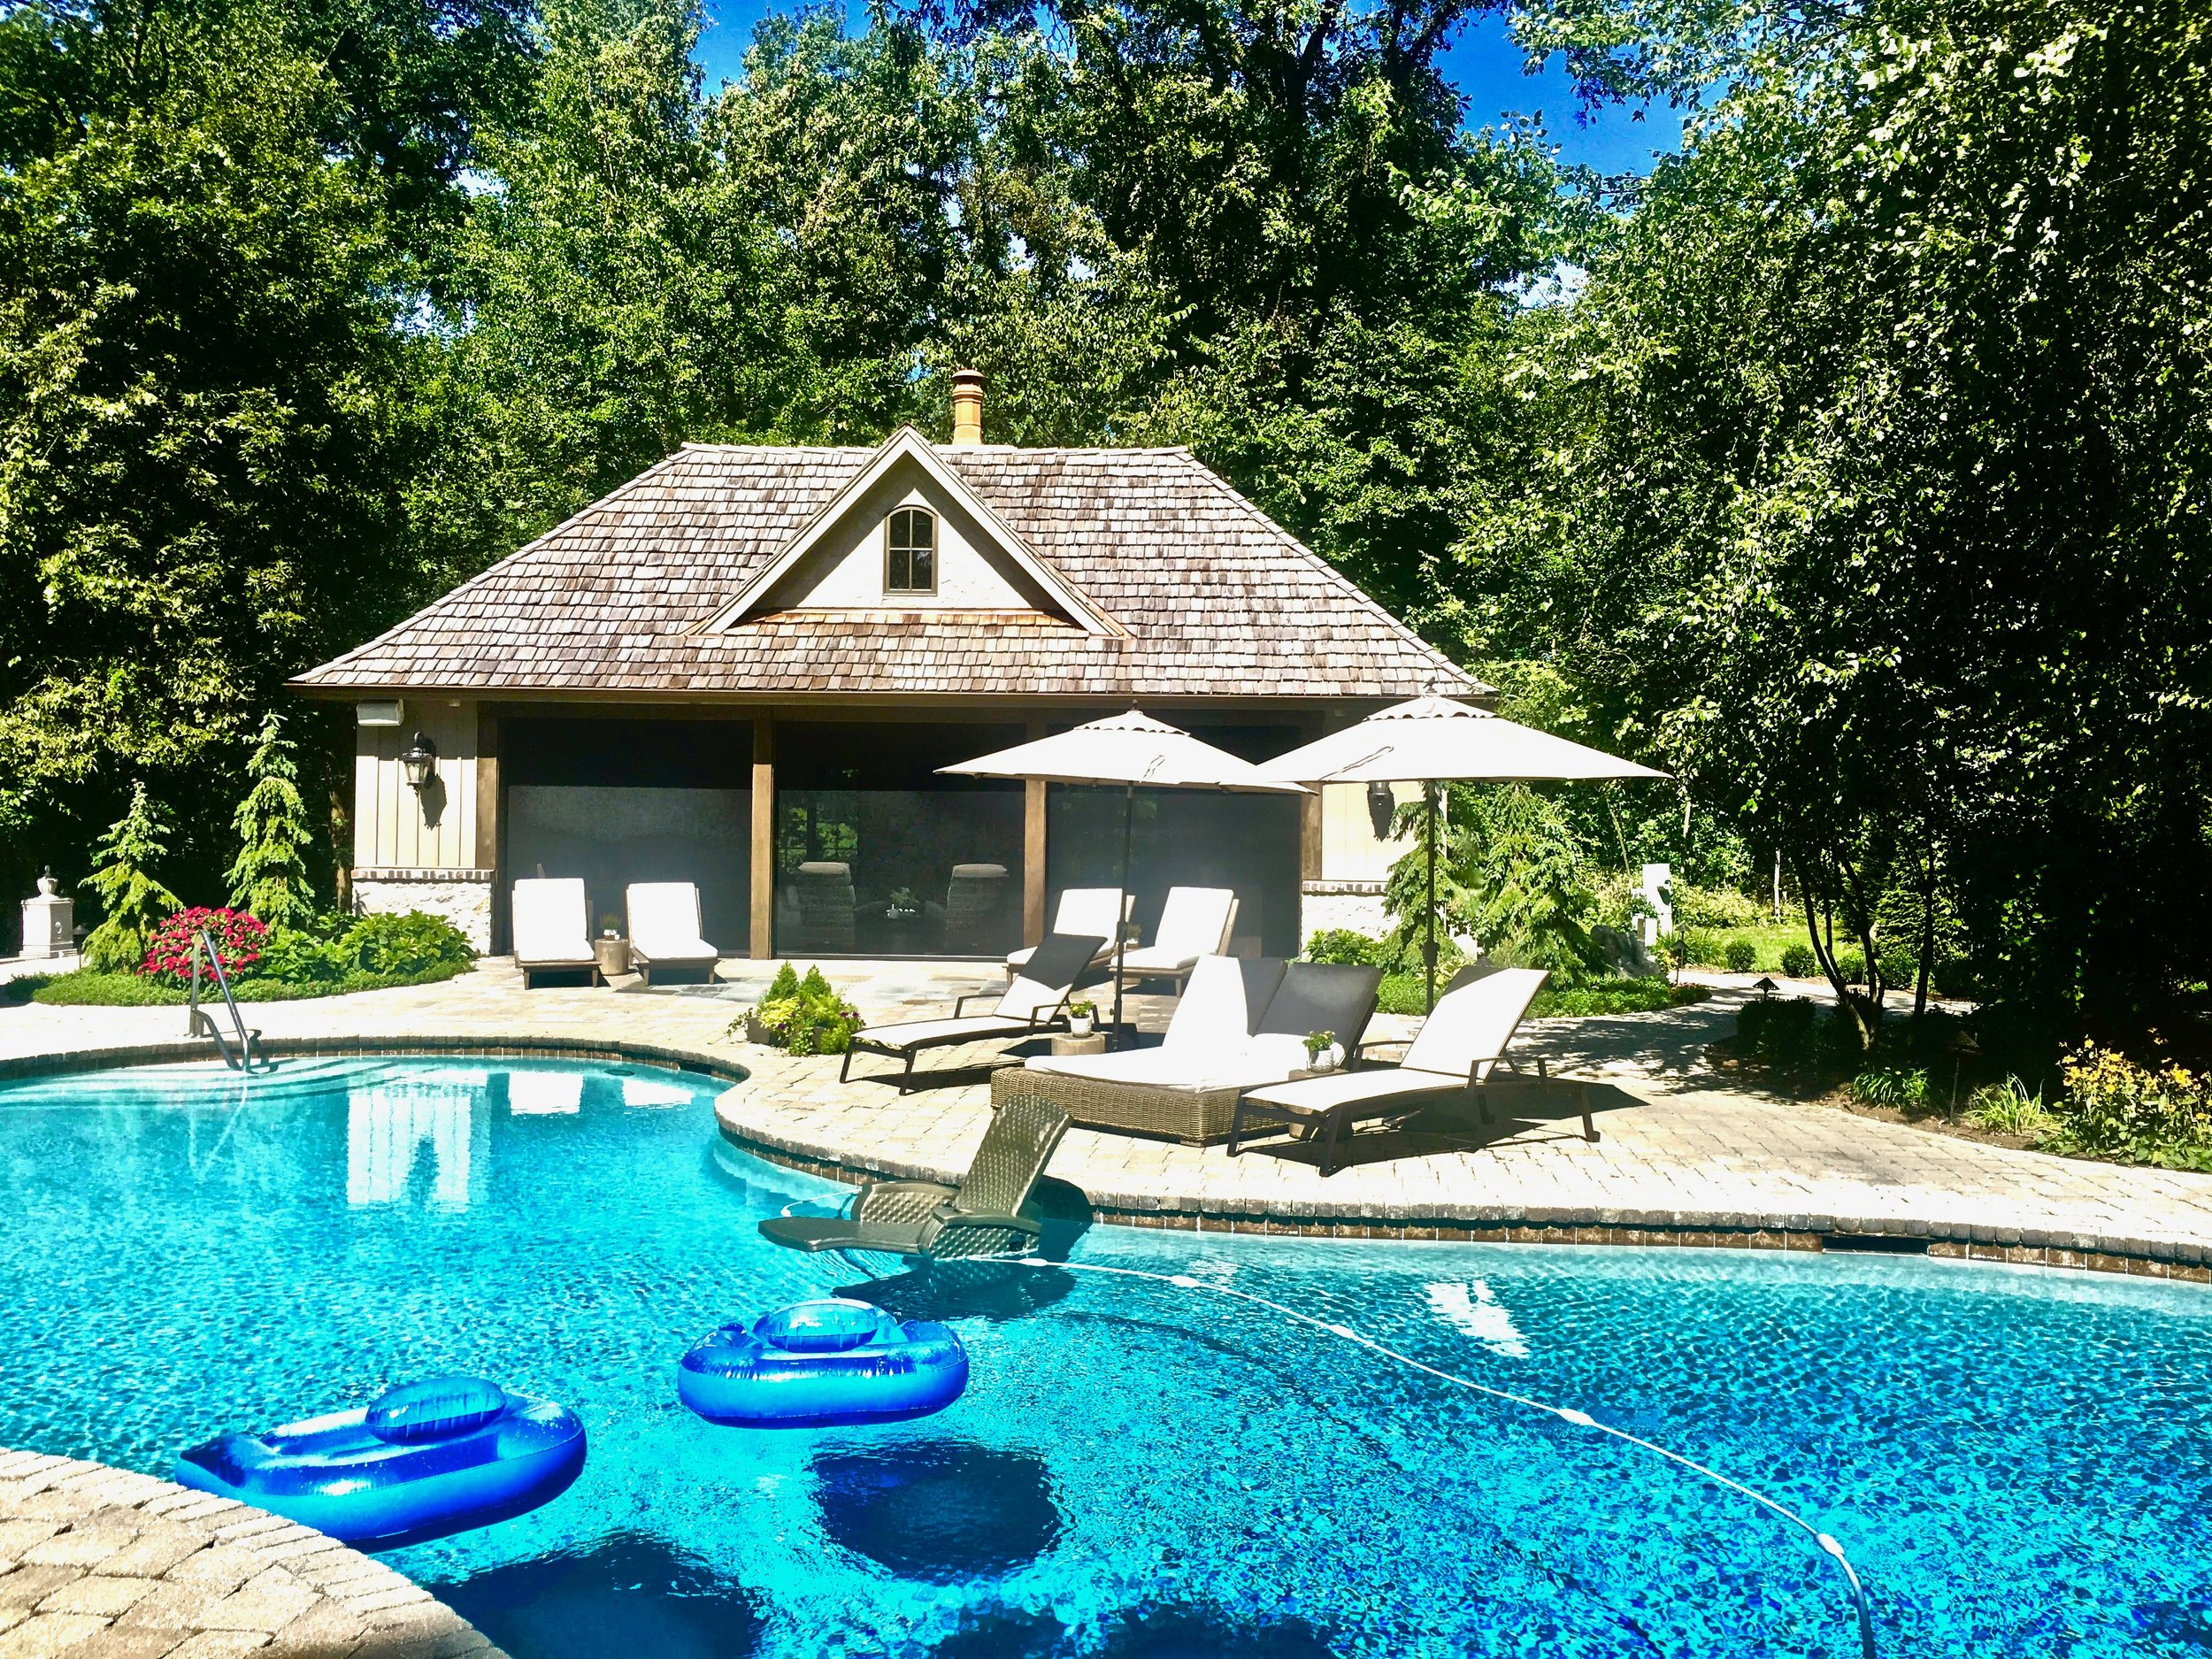 POOL HOUSE ADDITION IN GENEVA IL.